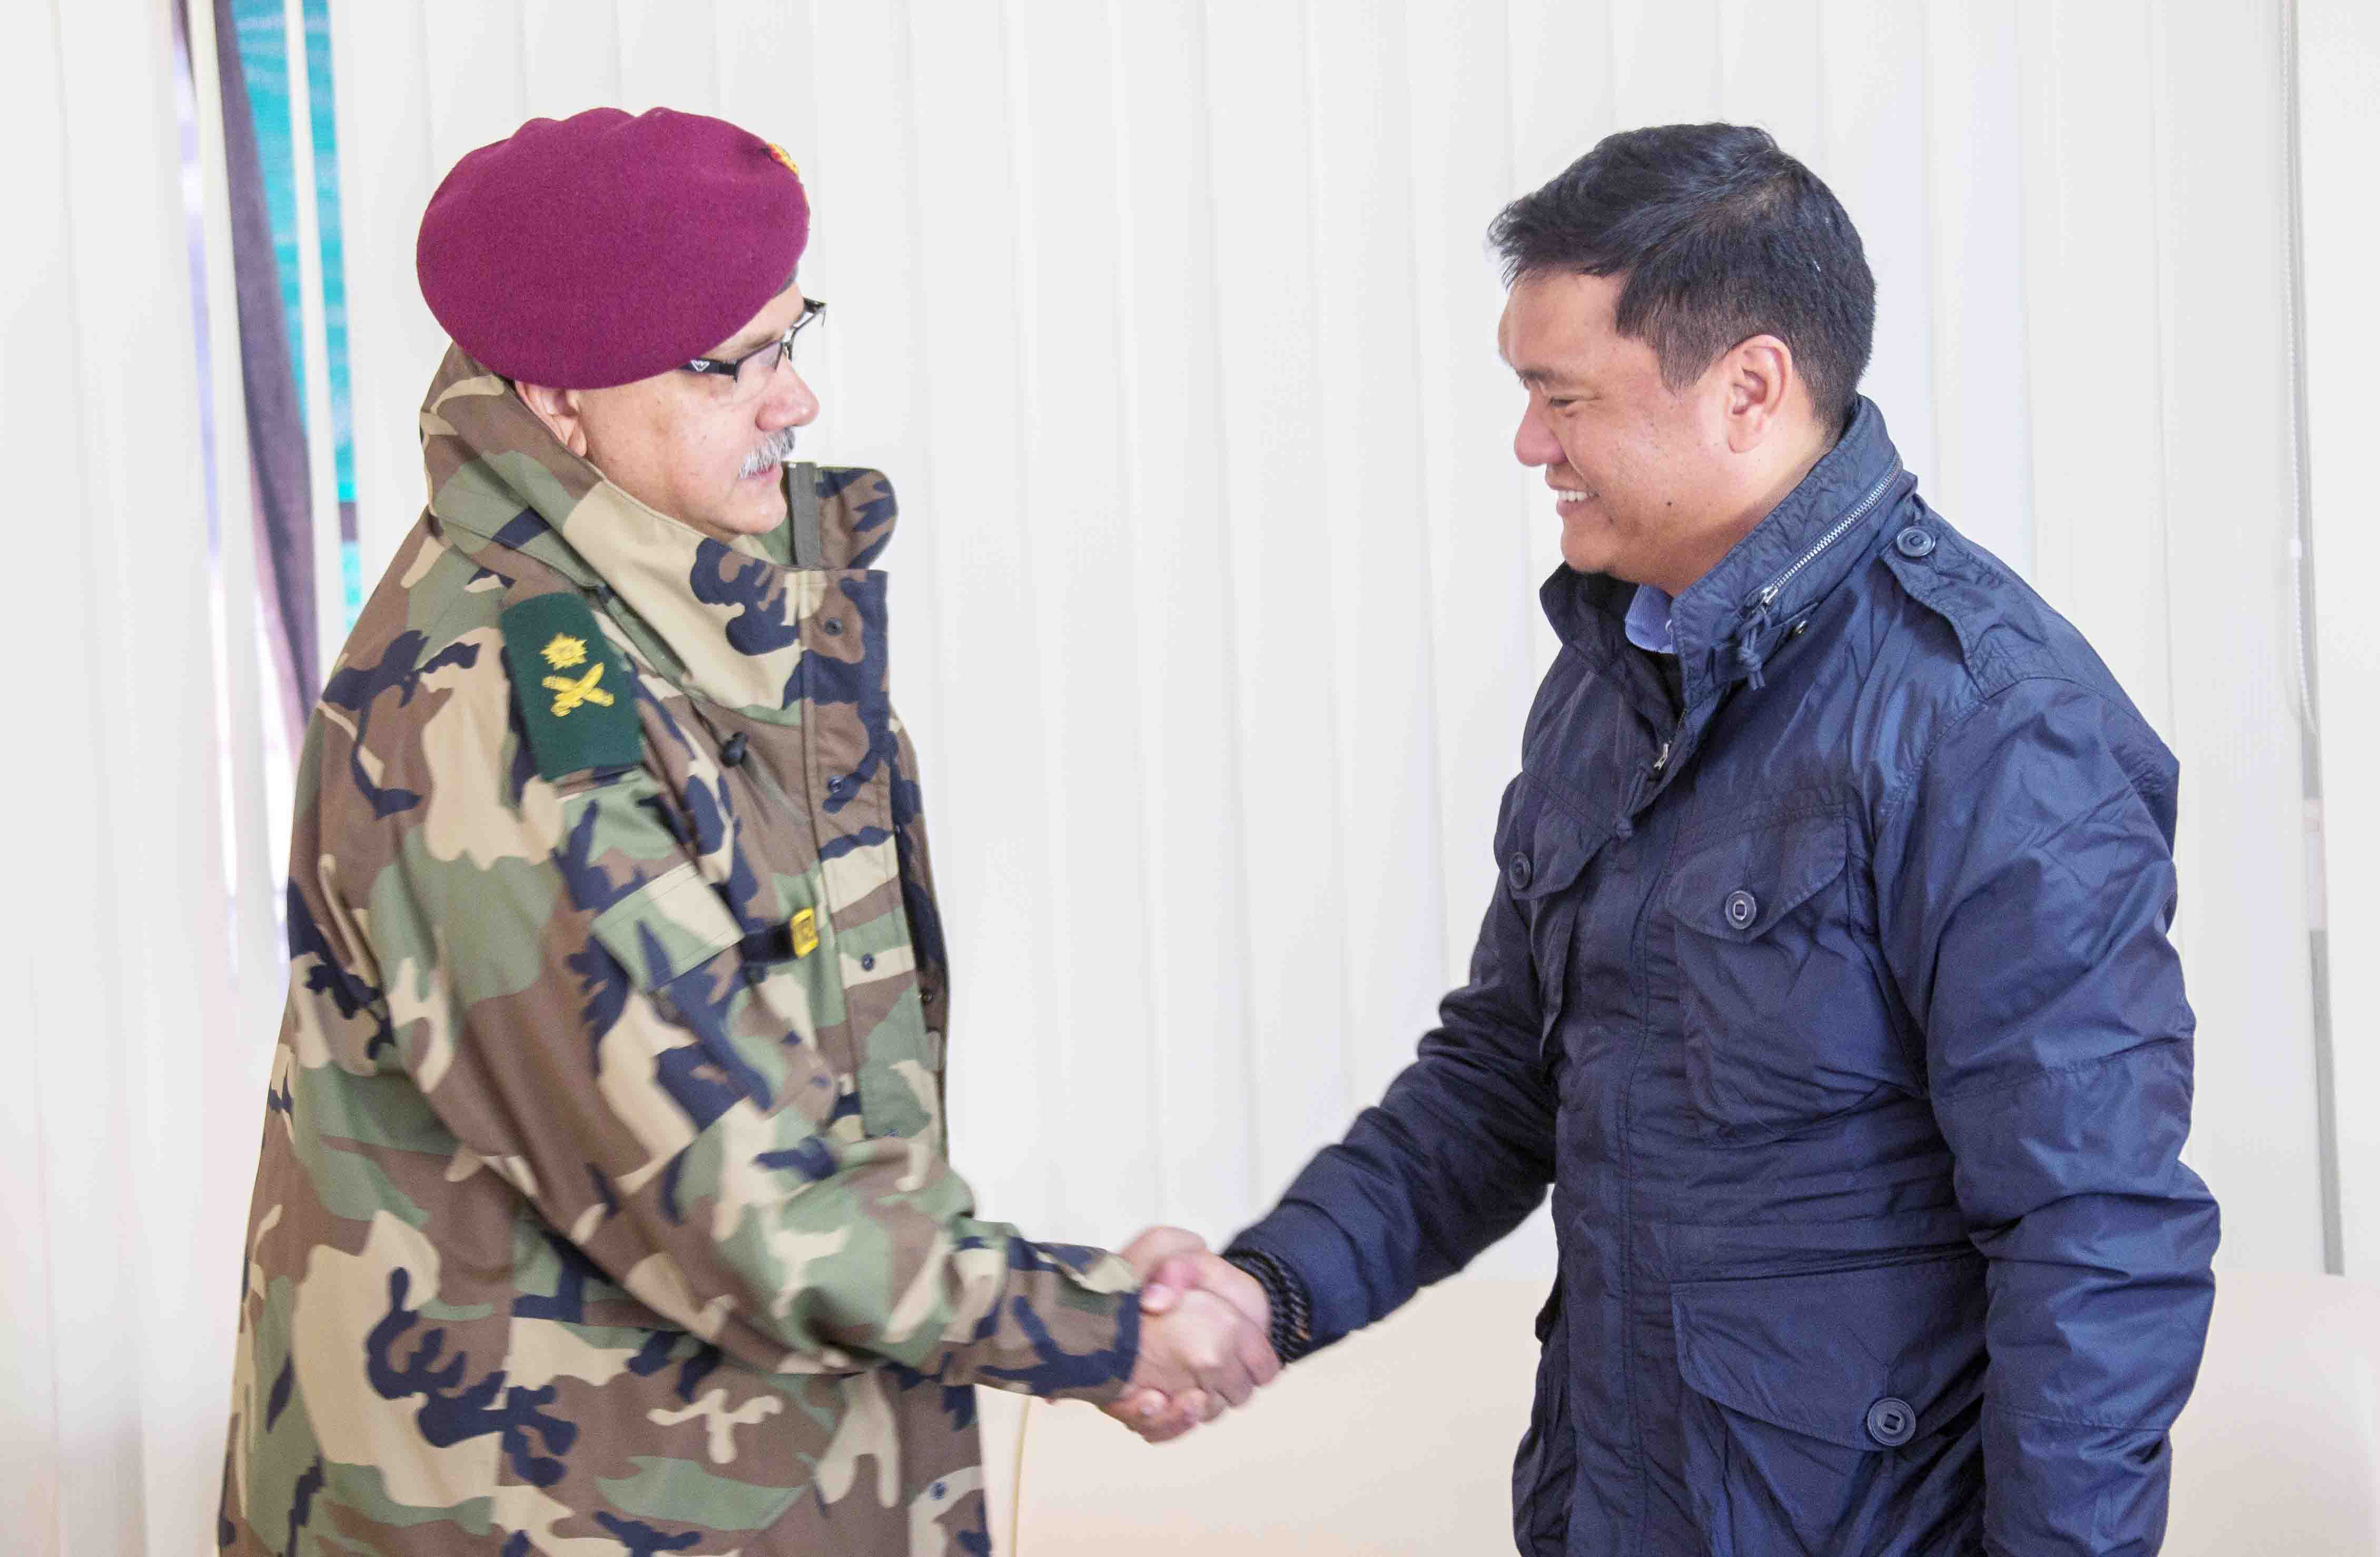 Army relations